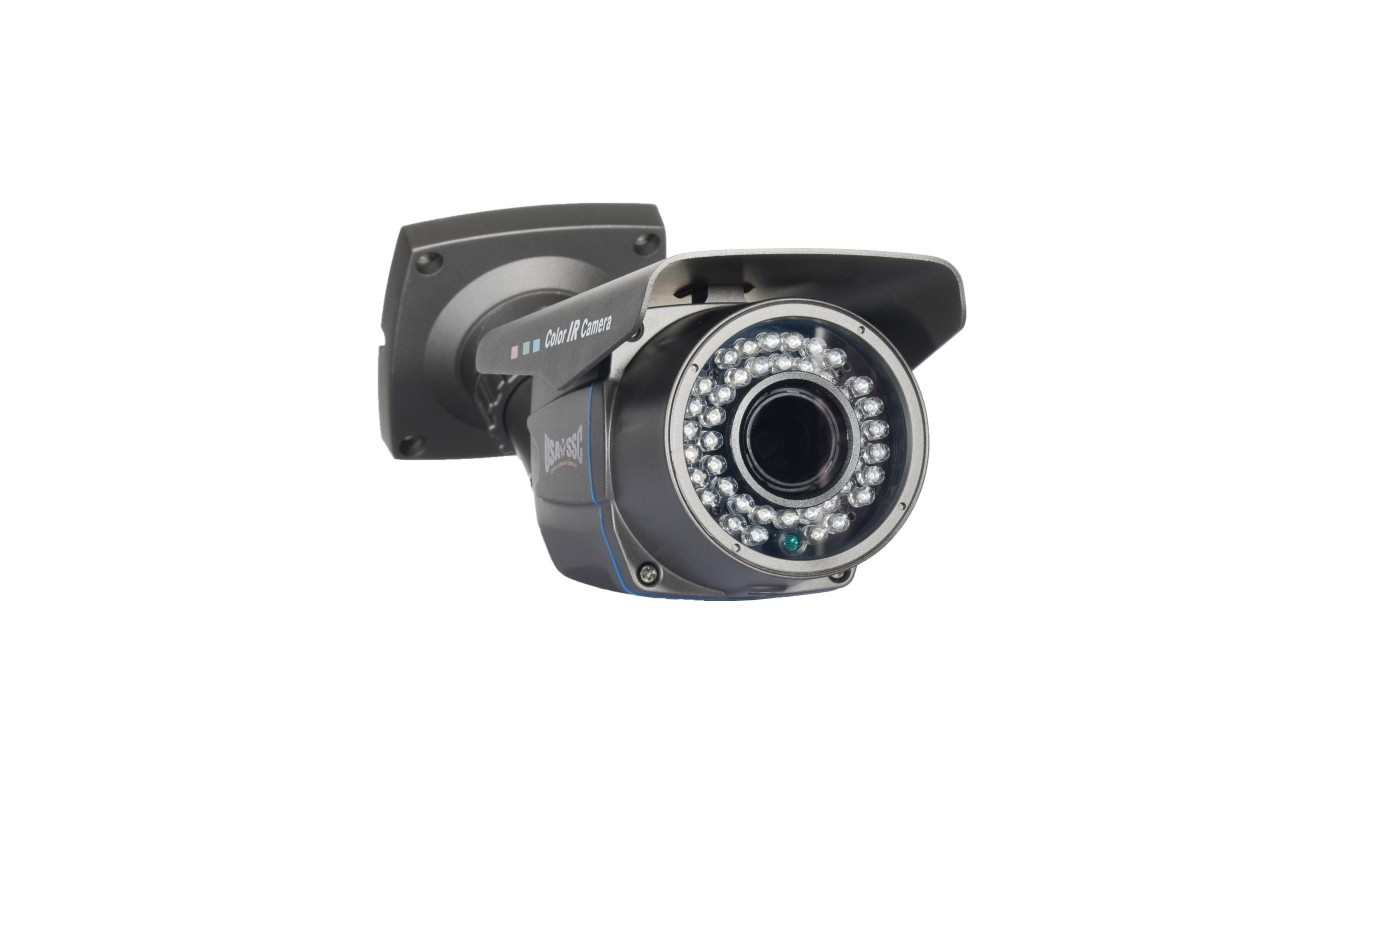 Indoor/Outdoor Bullet Camera, IR LEDs +/- 100', Color, 700TVL, 12VDC, 4-9mm, IP66, NTSC, Grey Housing